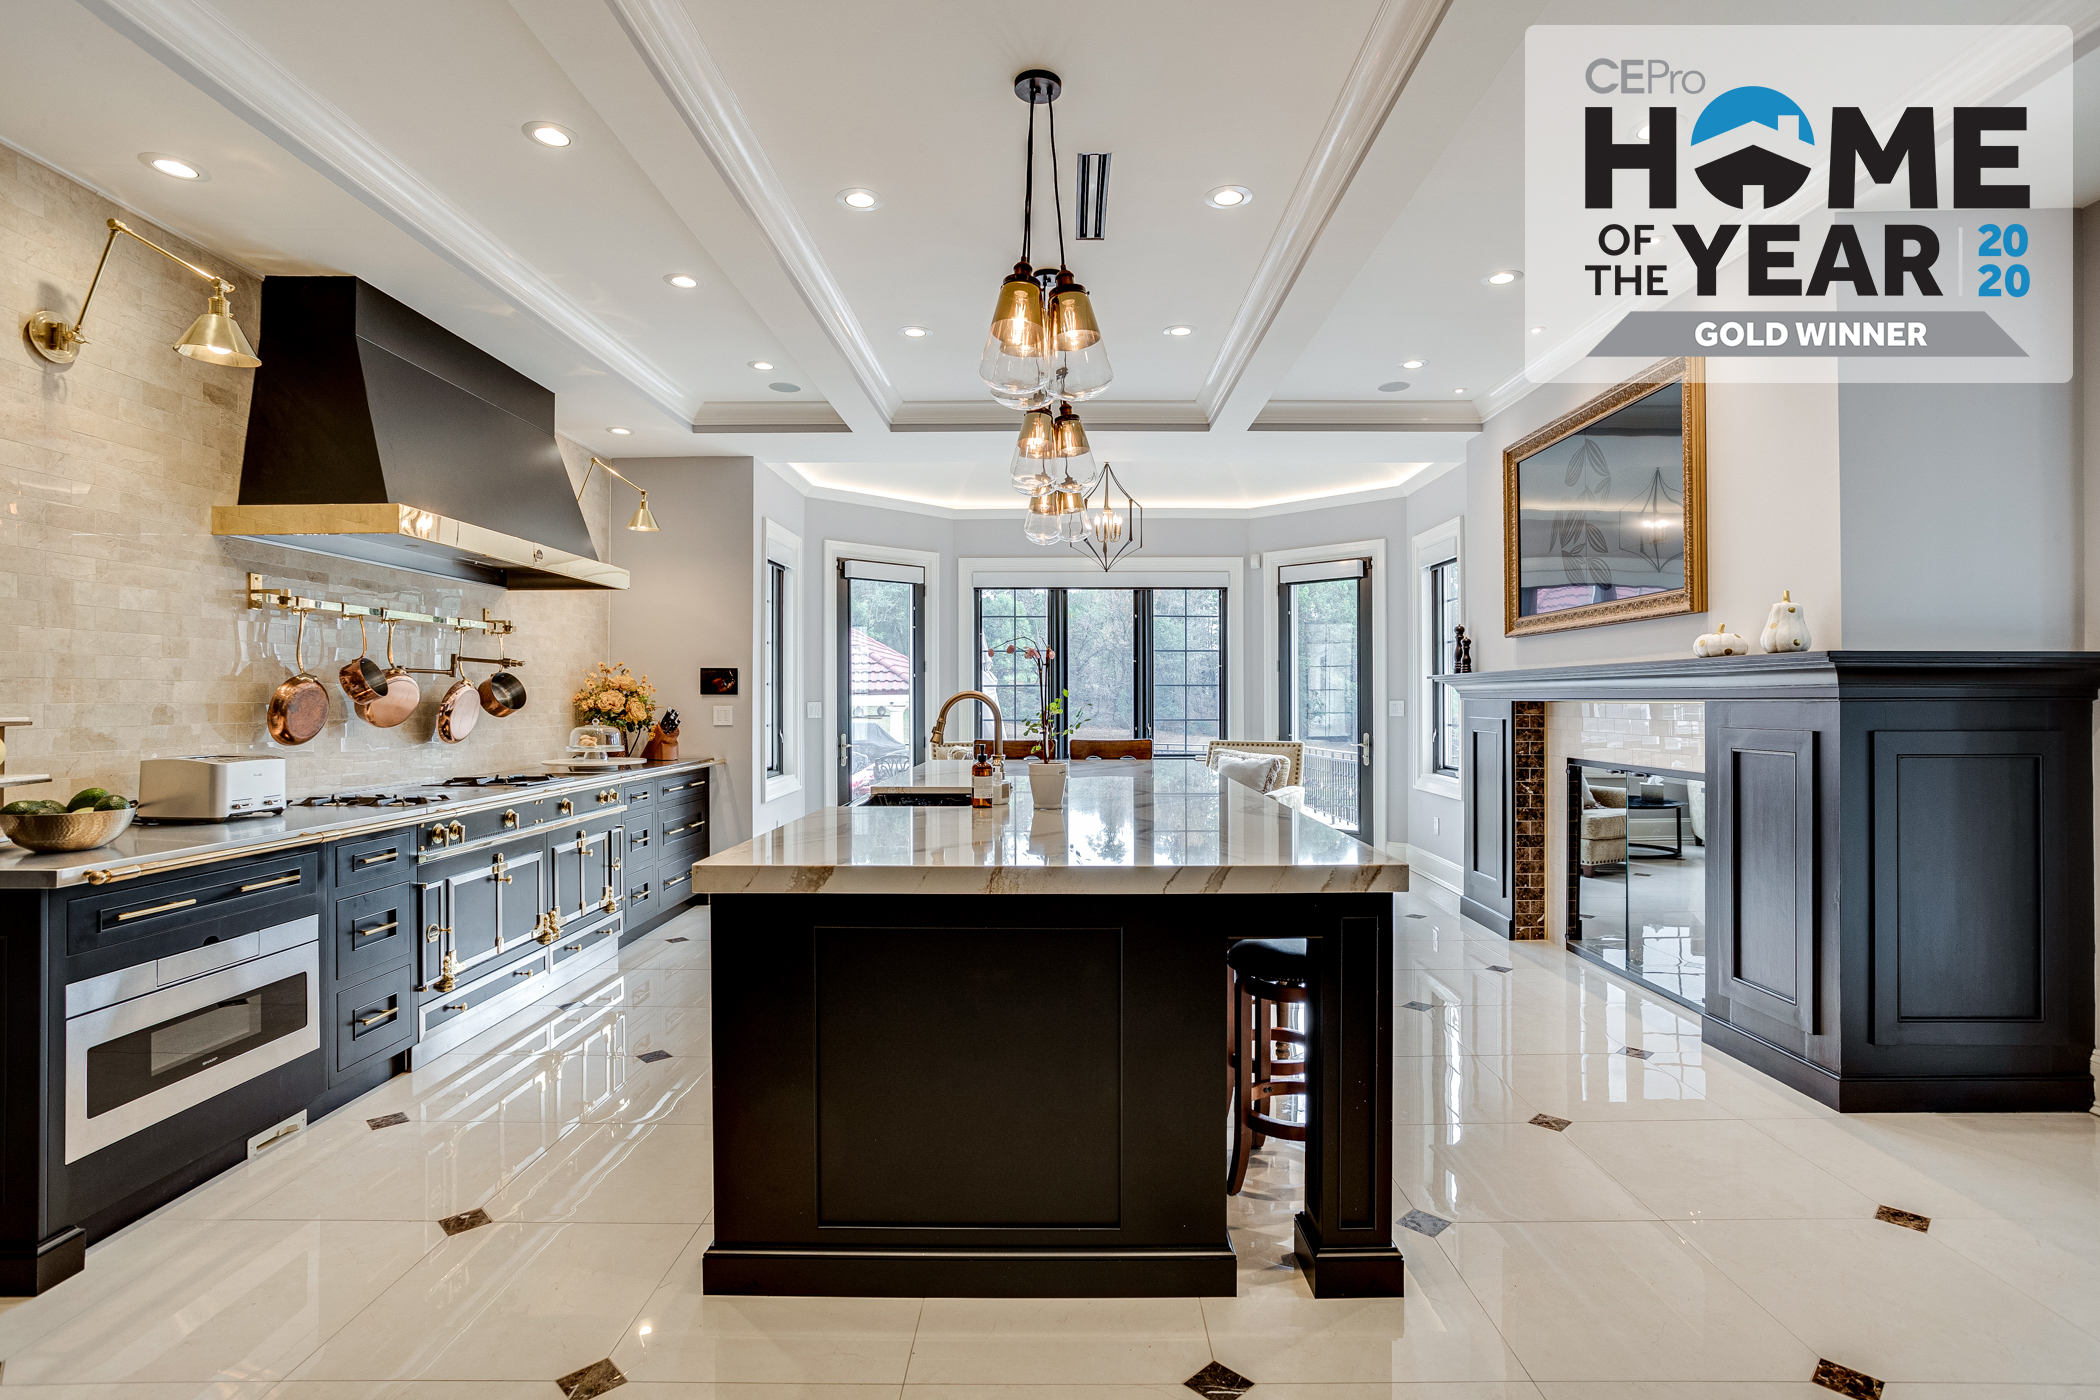 CE Pro 2020 Home of the Year: Gold Award Winner